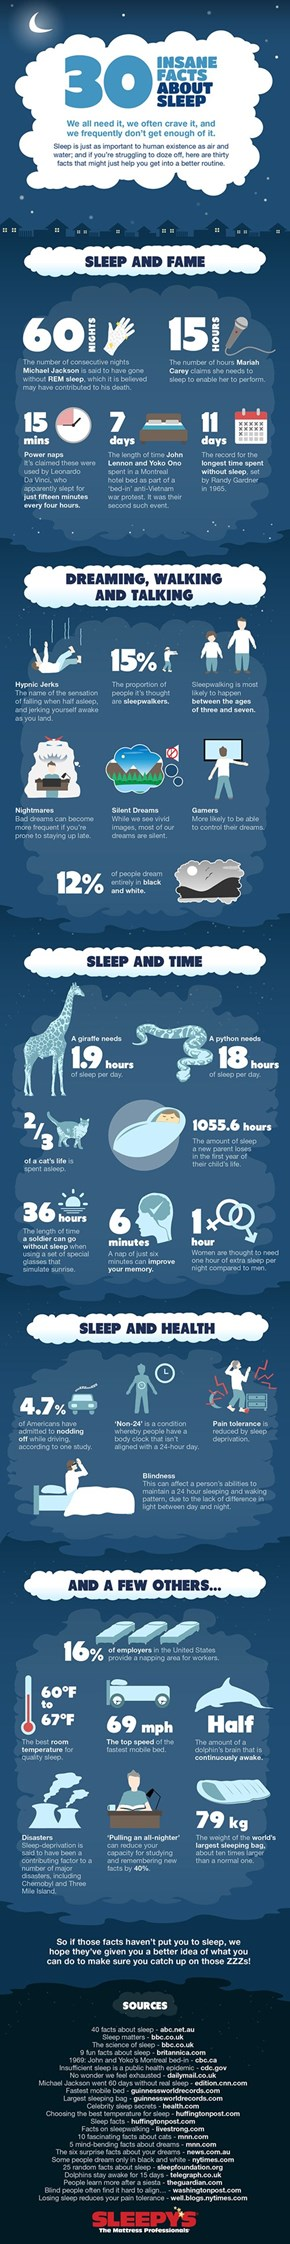 The Insane Facts About Sleep